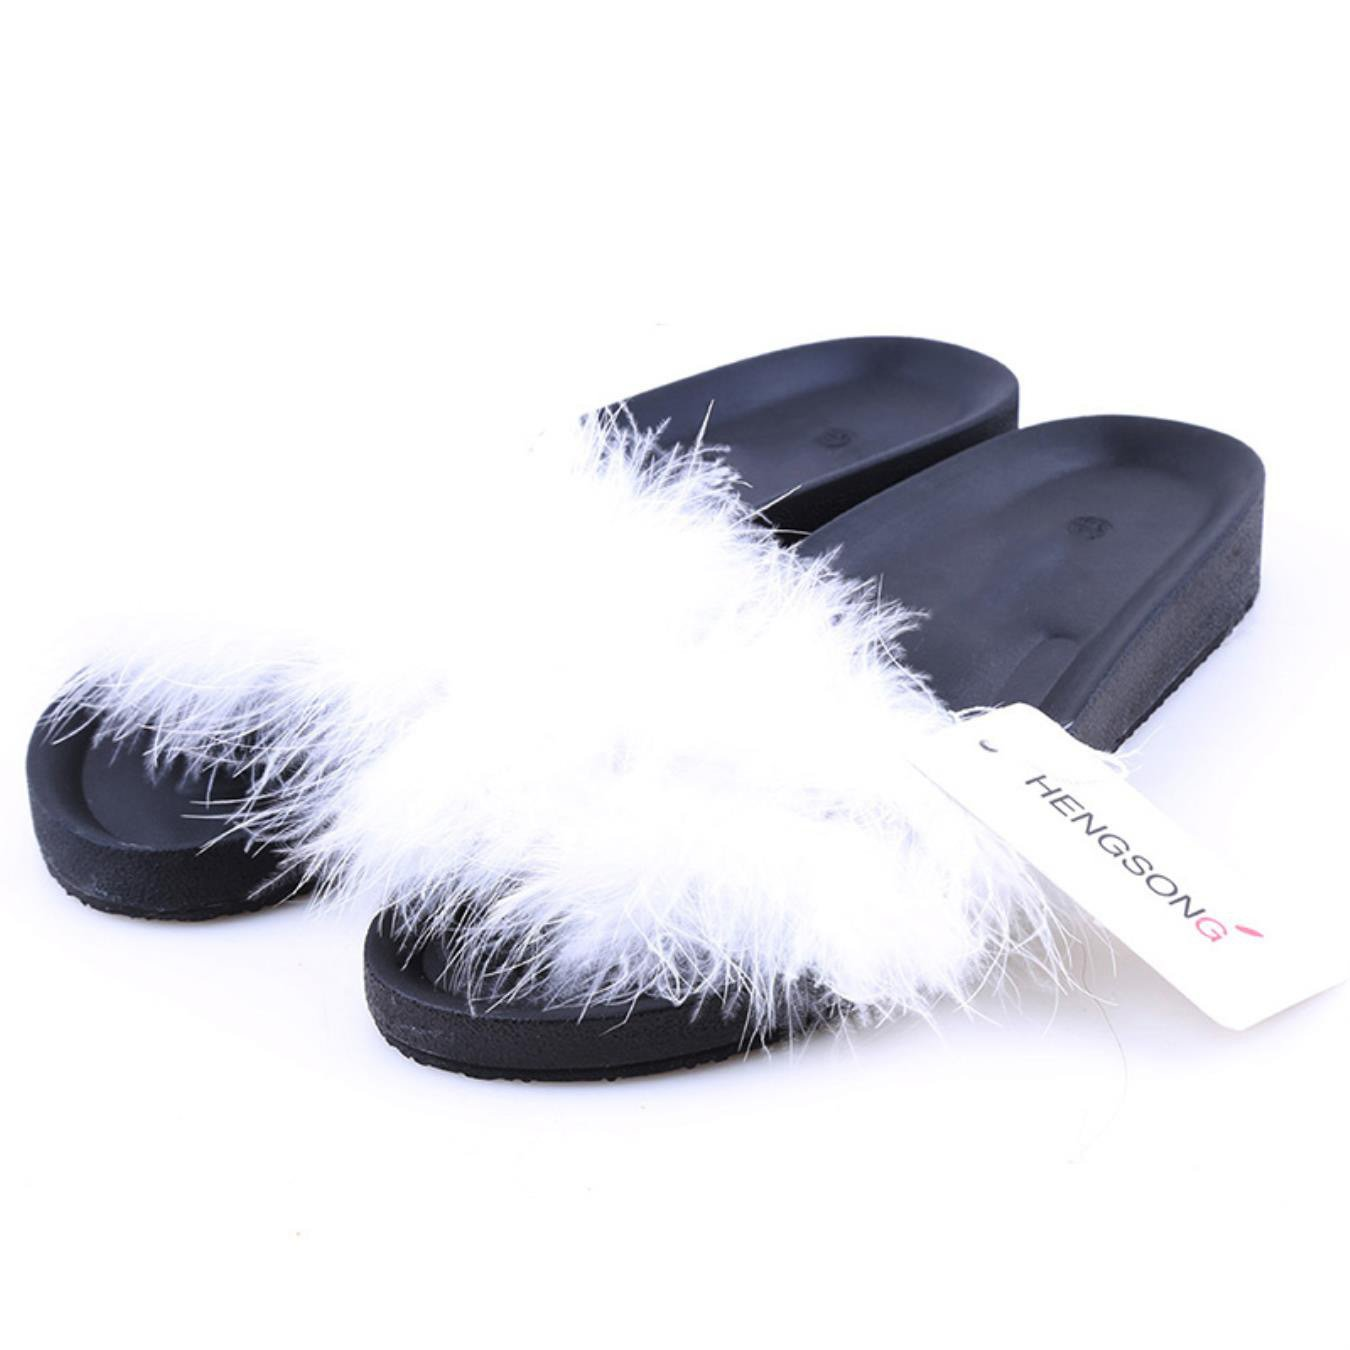 40c010be472 Amazon.com  Fur Furry Slide Sweet Feather Thick Bottom Beach Female Sandals  Hair Flip Flops  Clothing